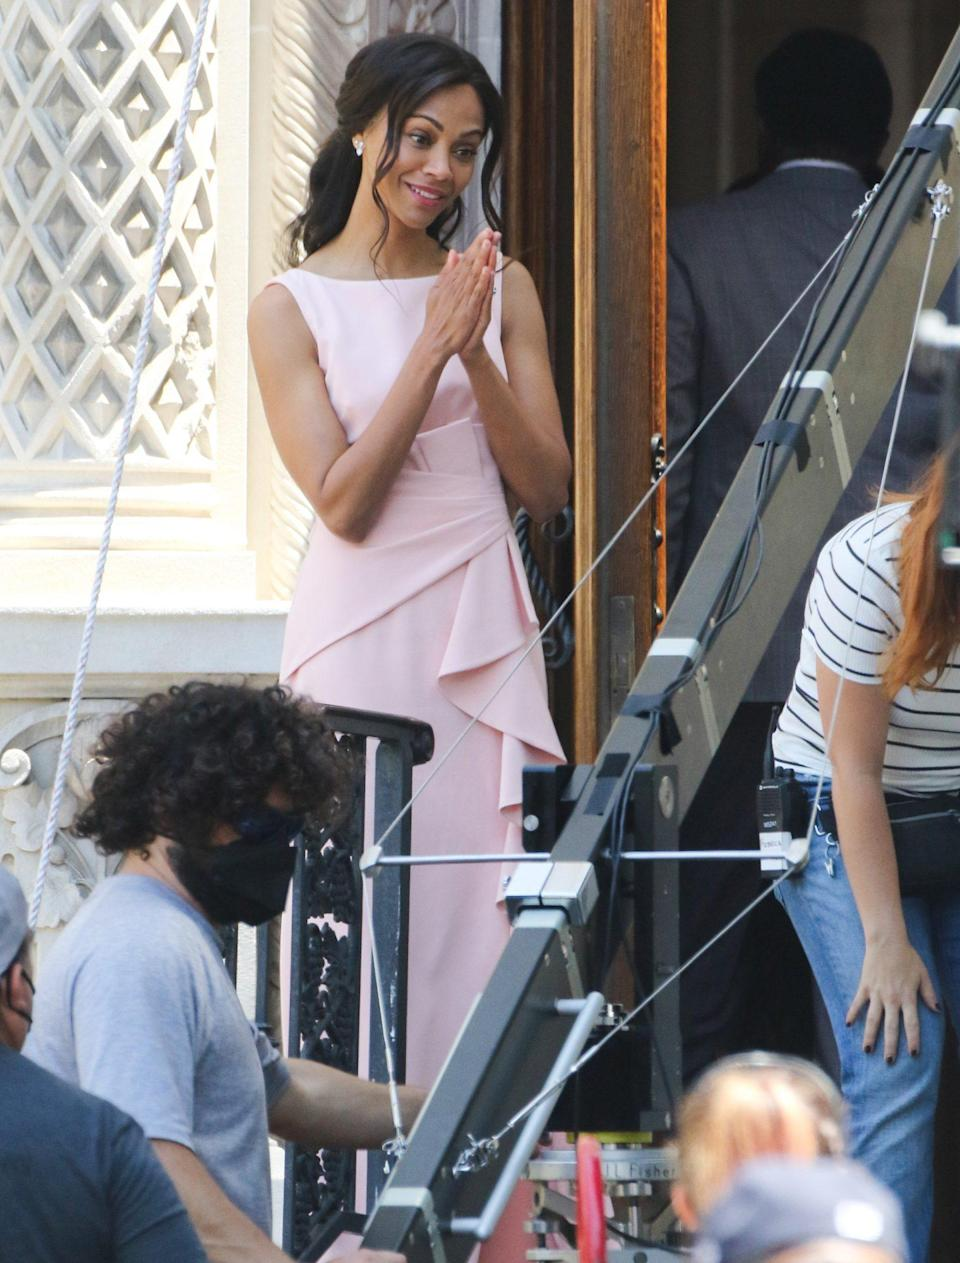 <p>Zoe Saldana films a wedding scene for an episode of <em>From Scratch</em> in L.A. on Tuesday.</p>